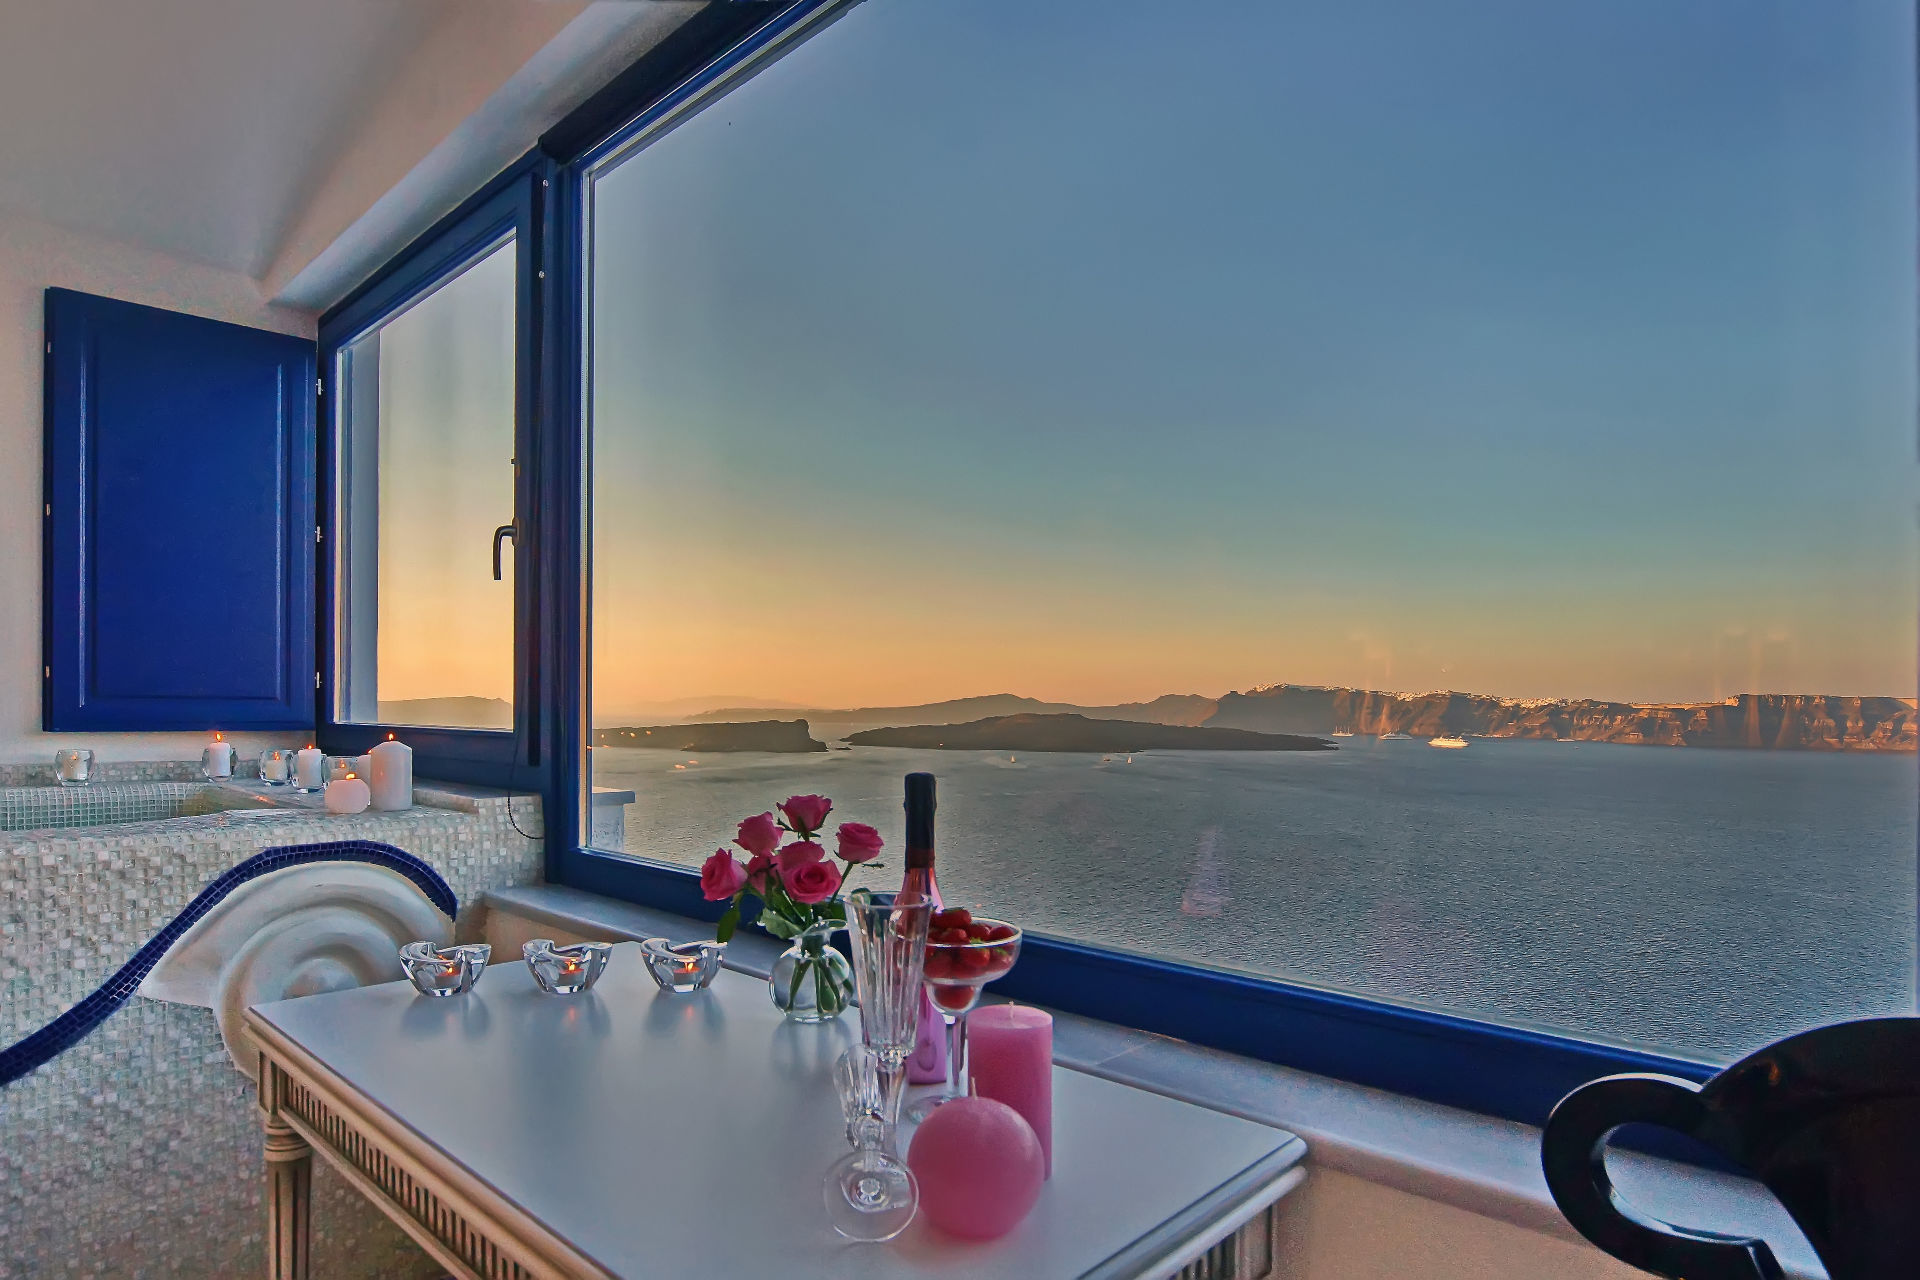 Cave_Pool_Suite_views_-_Astarte_Suites_Luxury_Hotel_in_Santorini_island